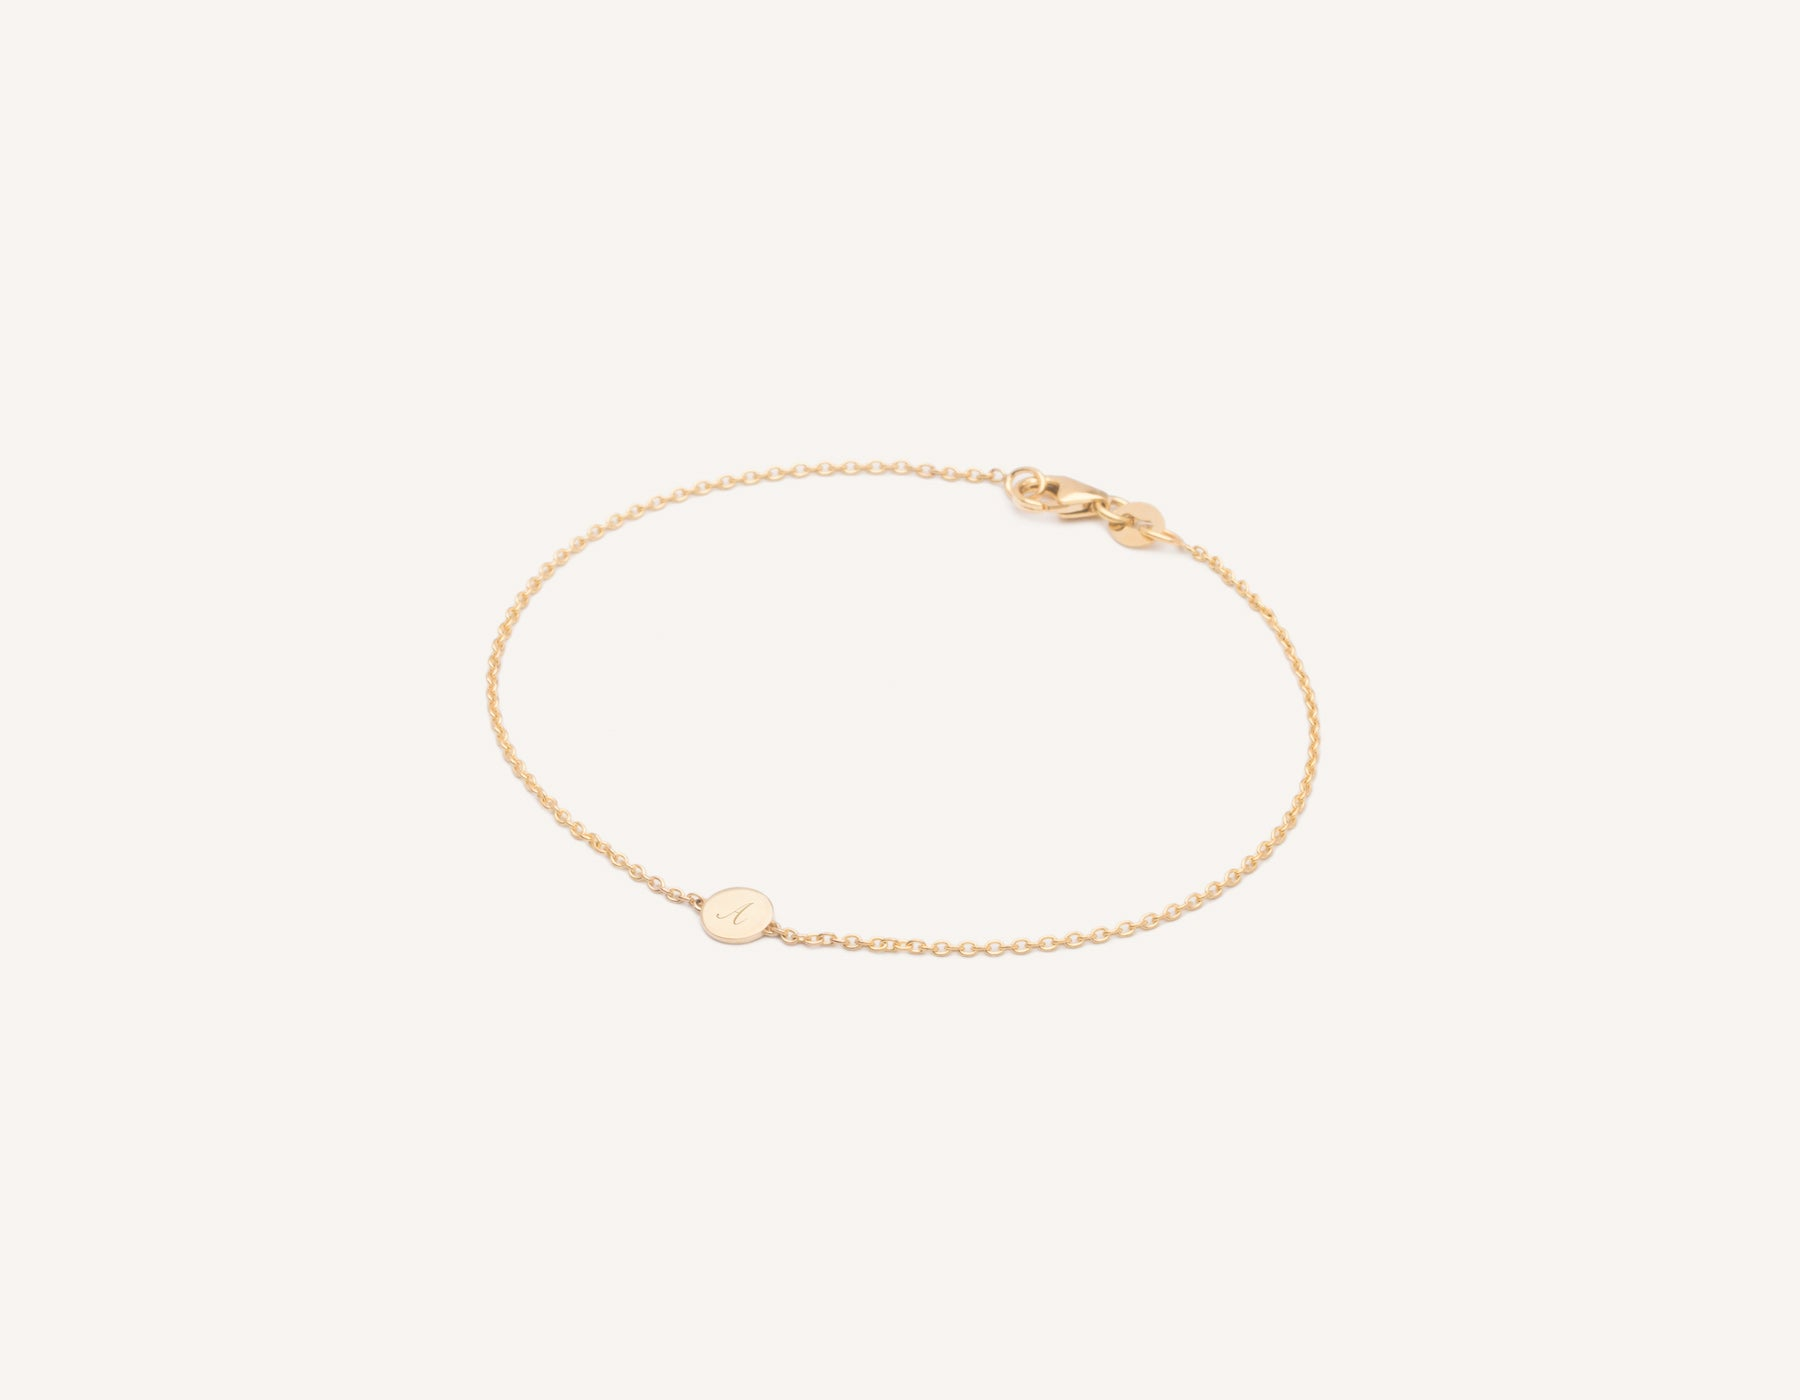 Personalized engraving Initial Bracelet 14k solid gold circular disk on delicate chain by Vrai & Oro minimalist jewelry, 14K Yellow Gold